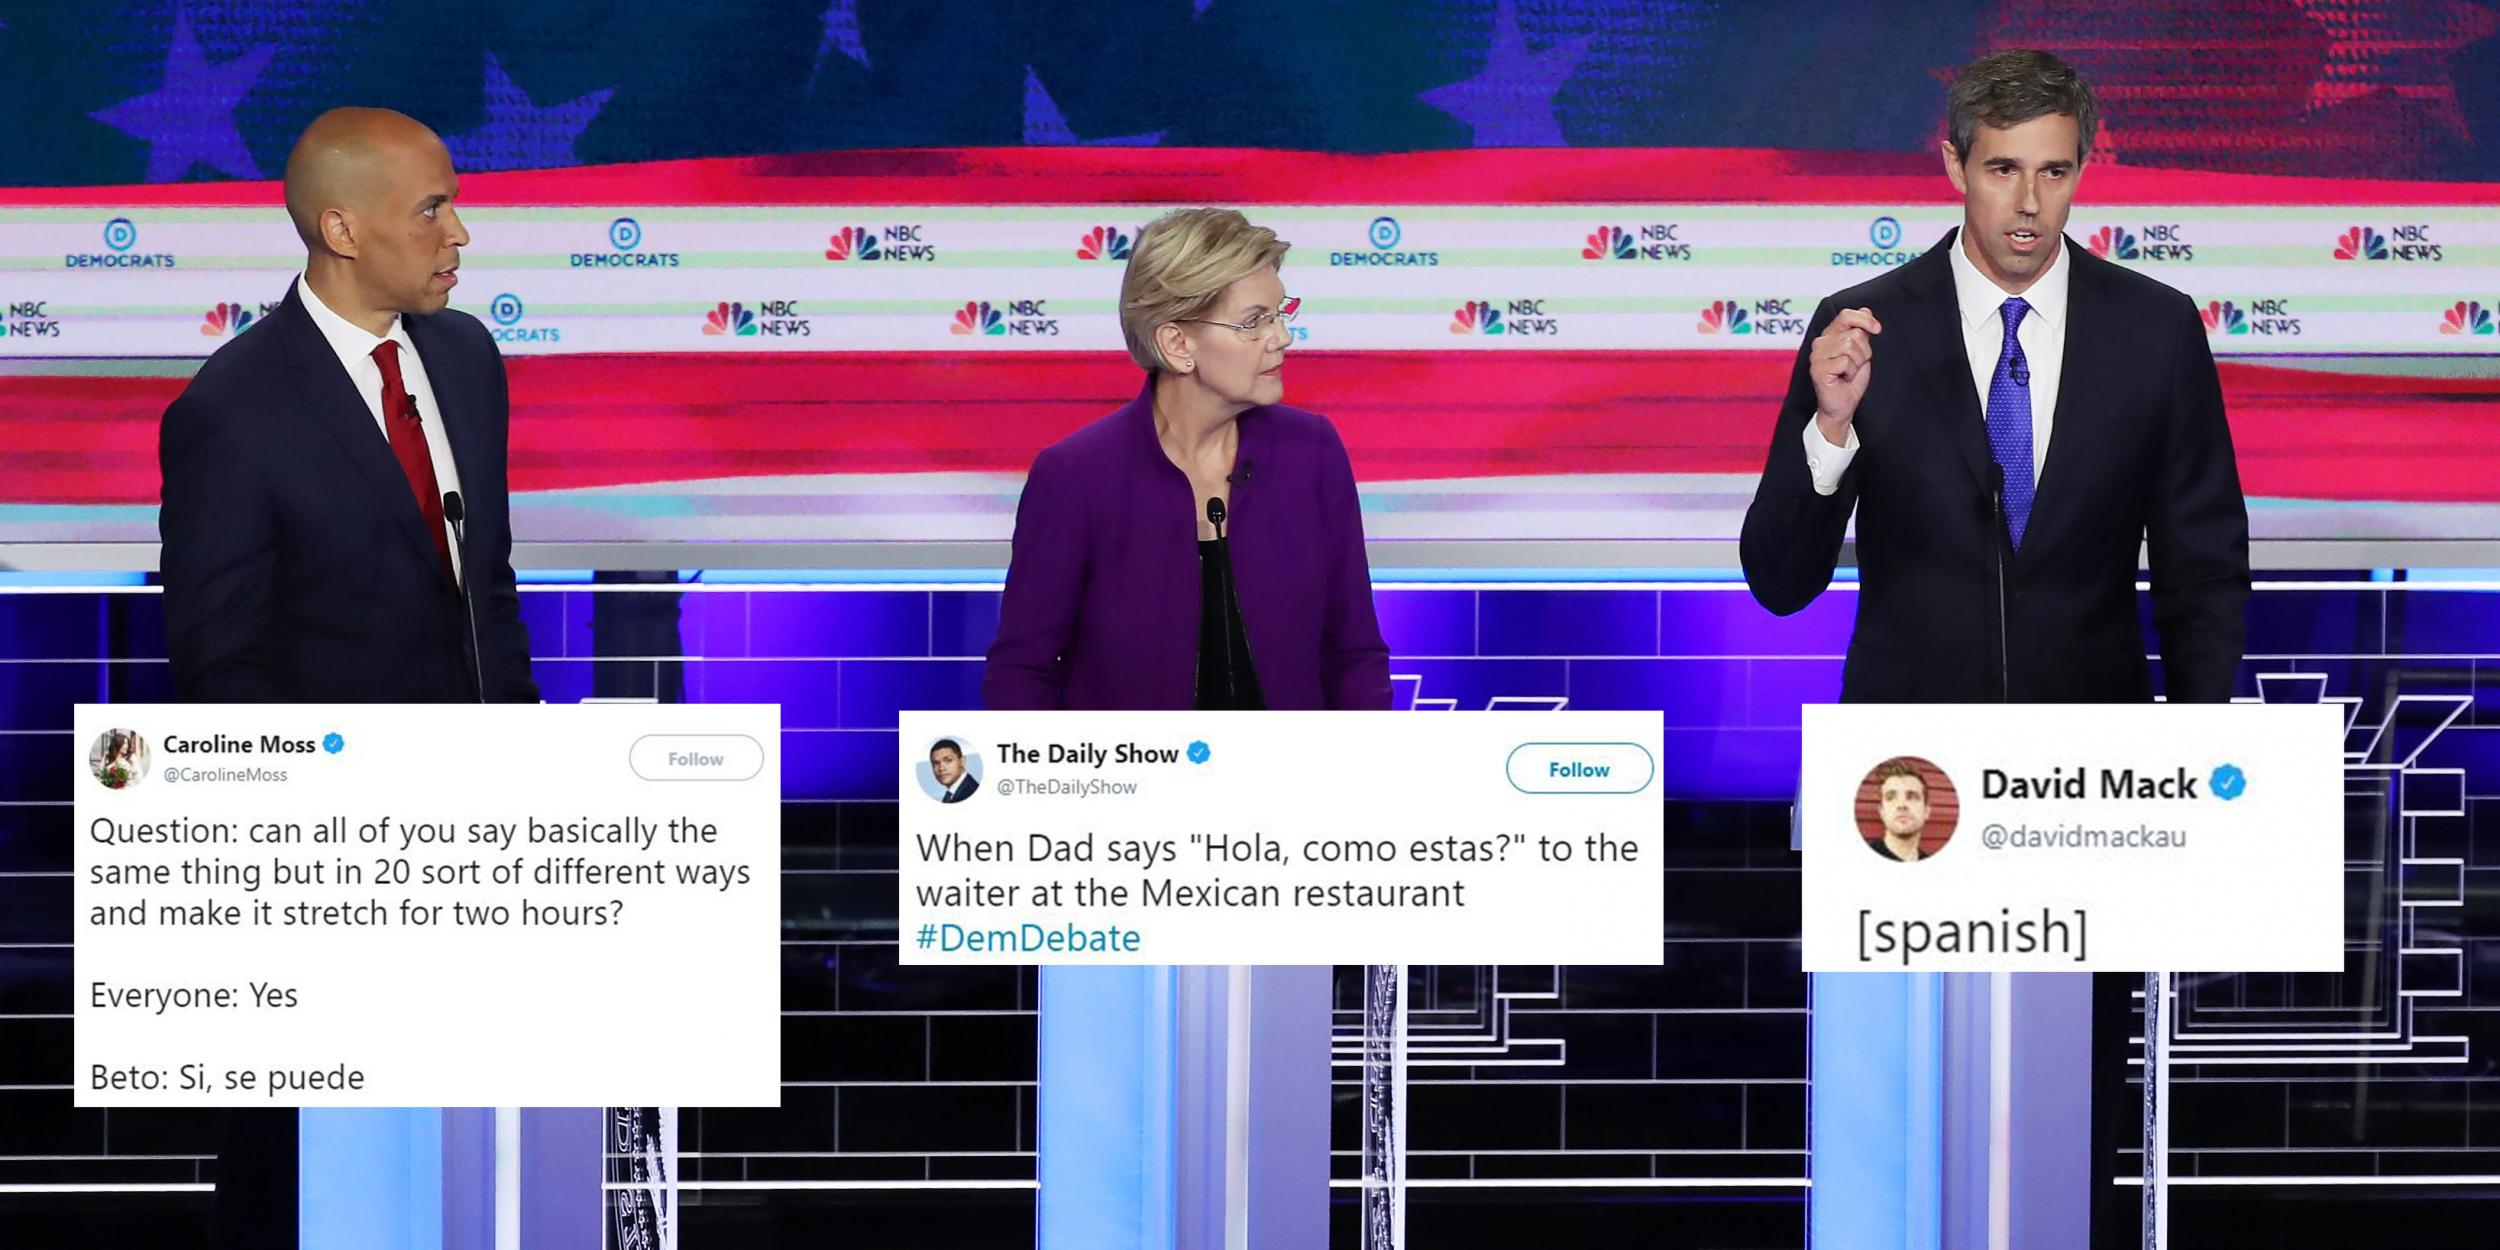 Democratic Debate Beto O Rourke Becomes Meme After Answering